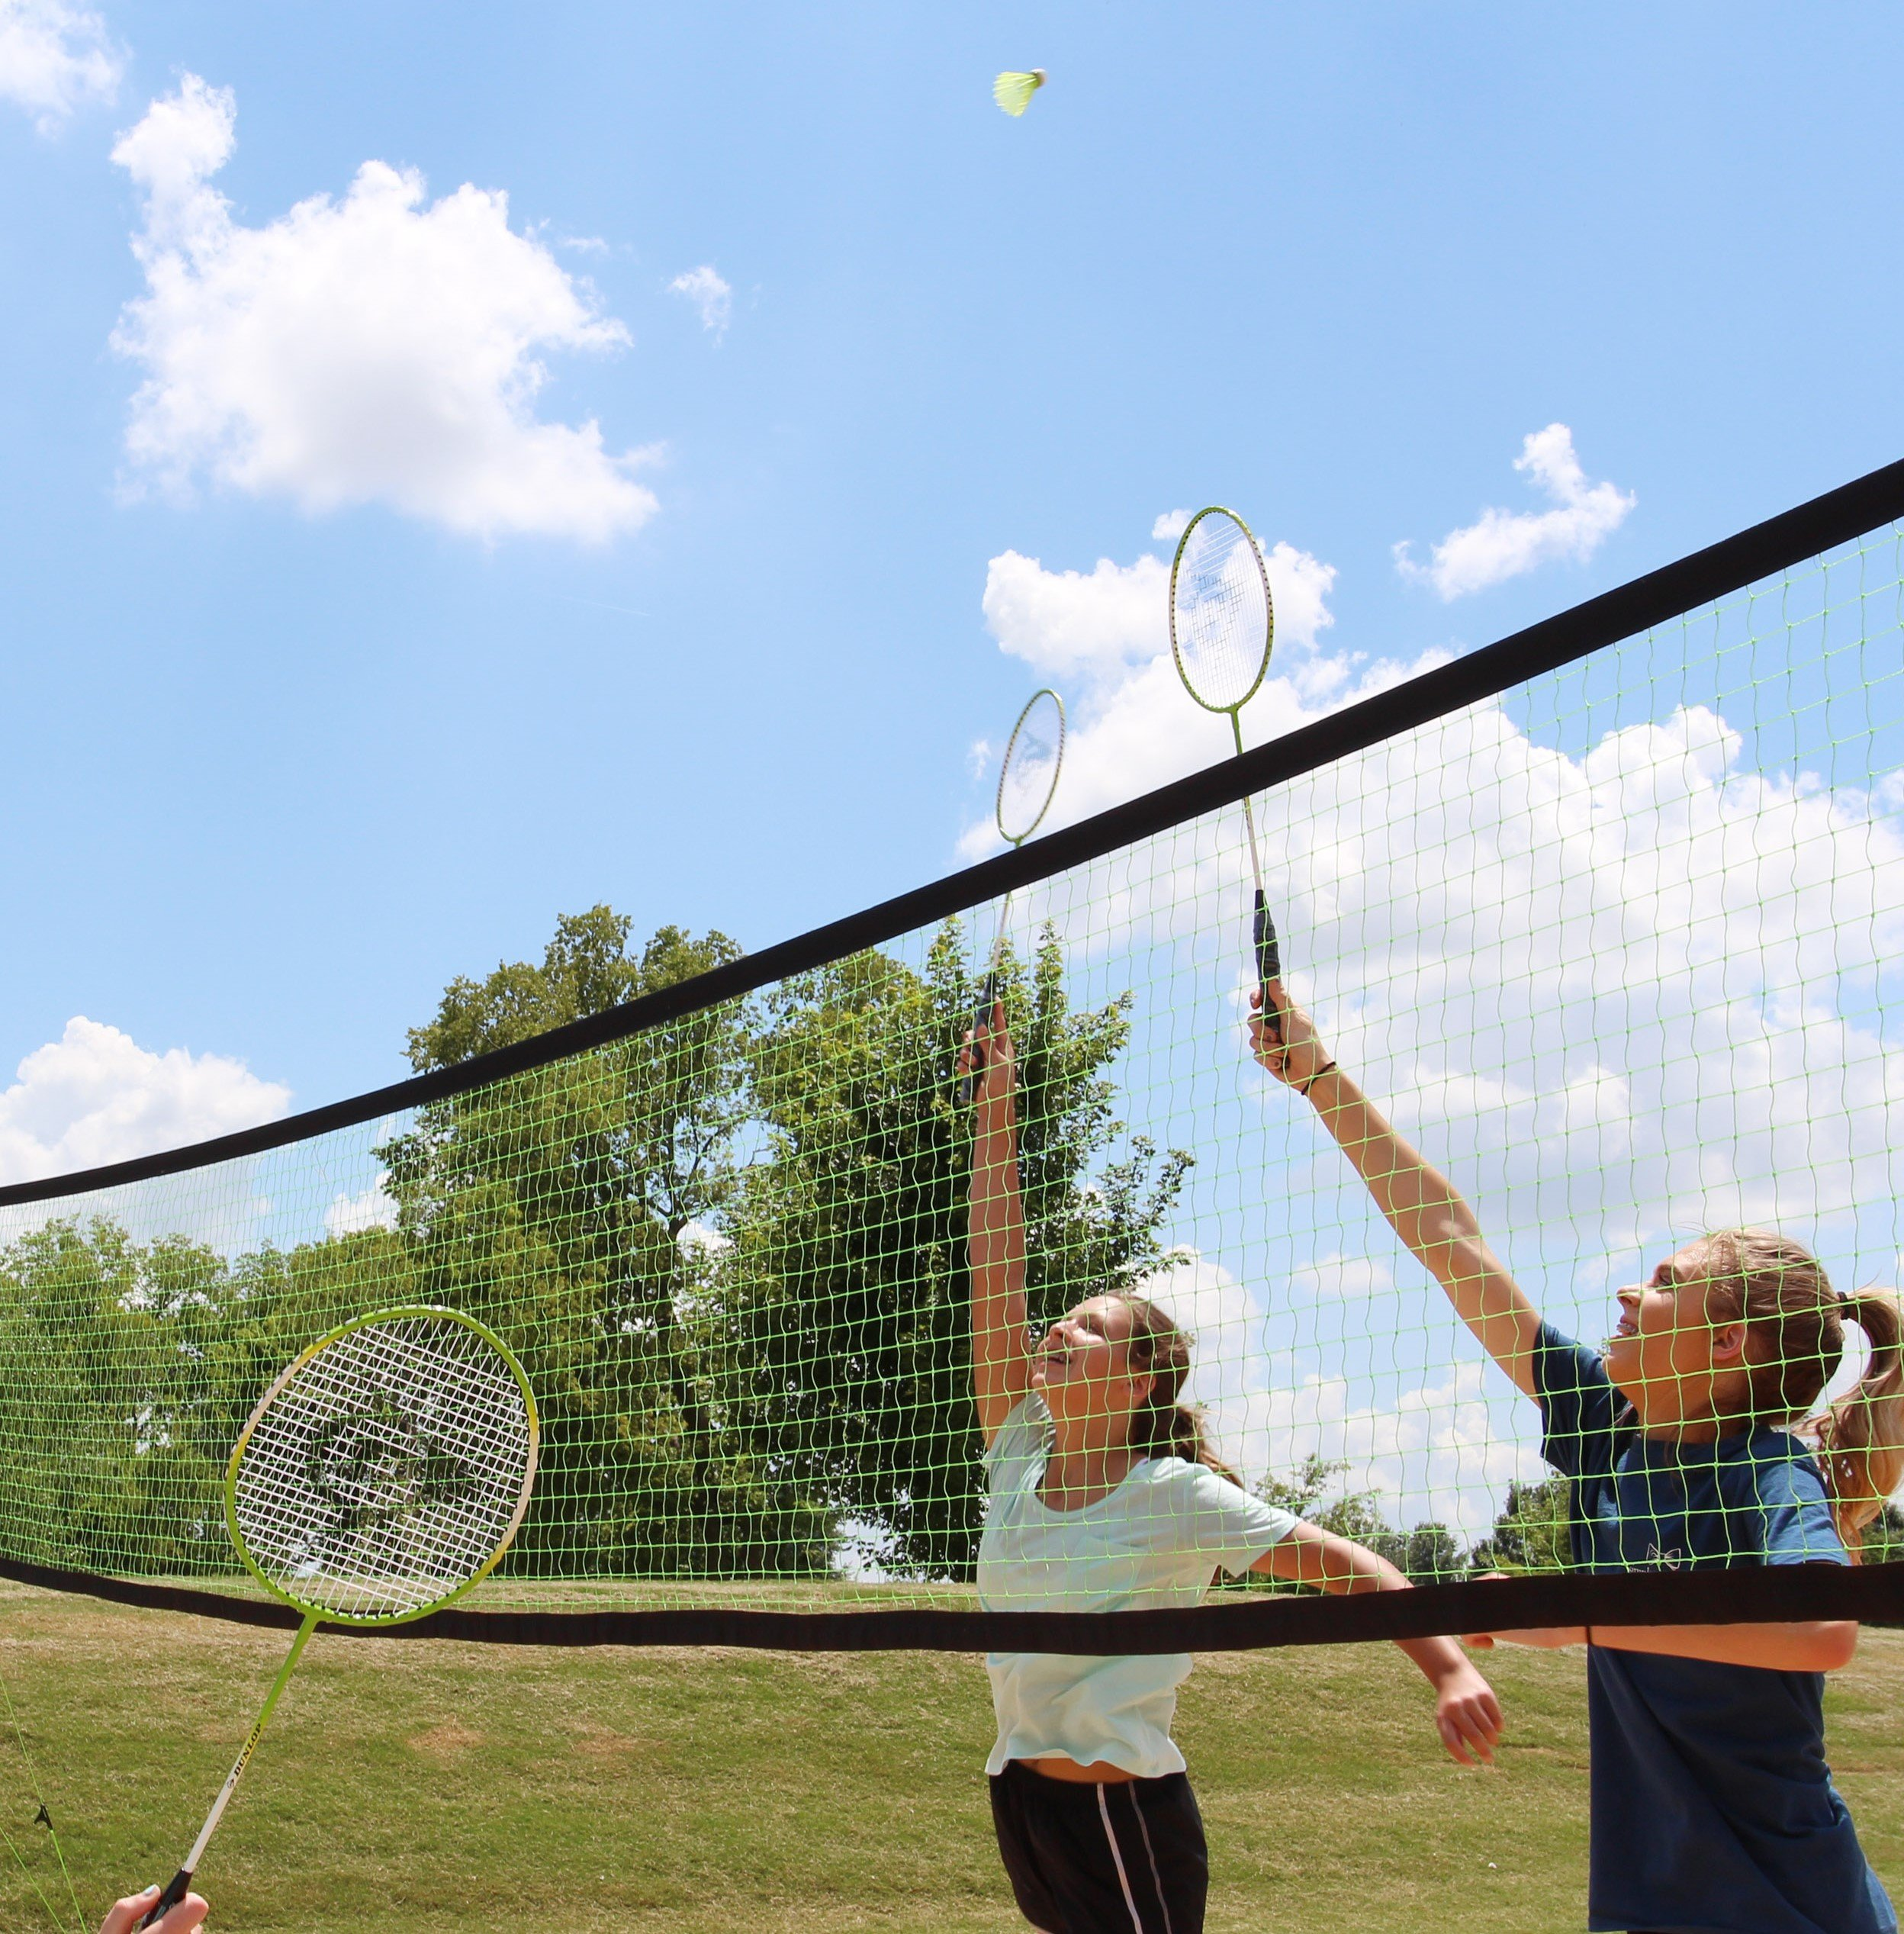 Dunlop Professional Volleyball Badminton Games: Classic Outdoor Lawn Game Set with Carry Bag by Dunlop (Image #4)